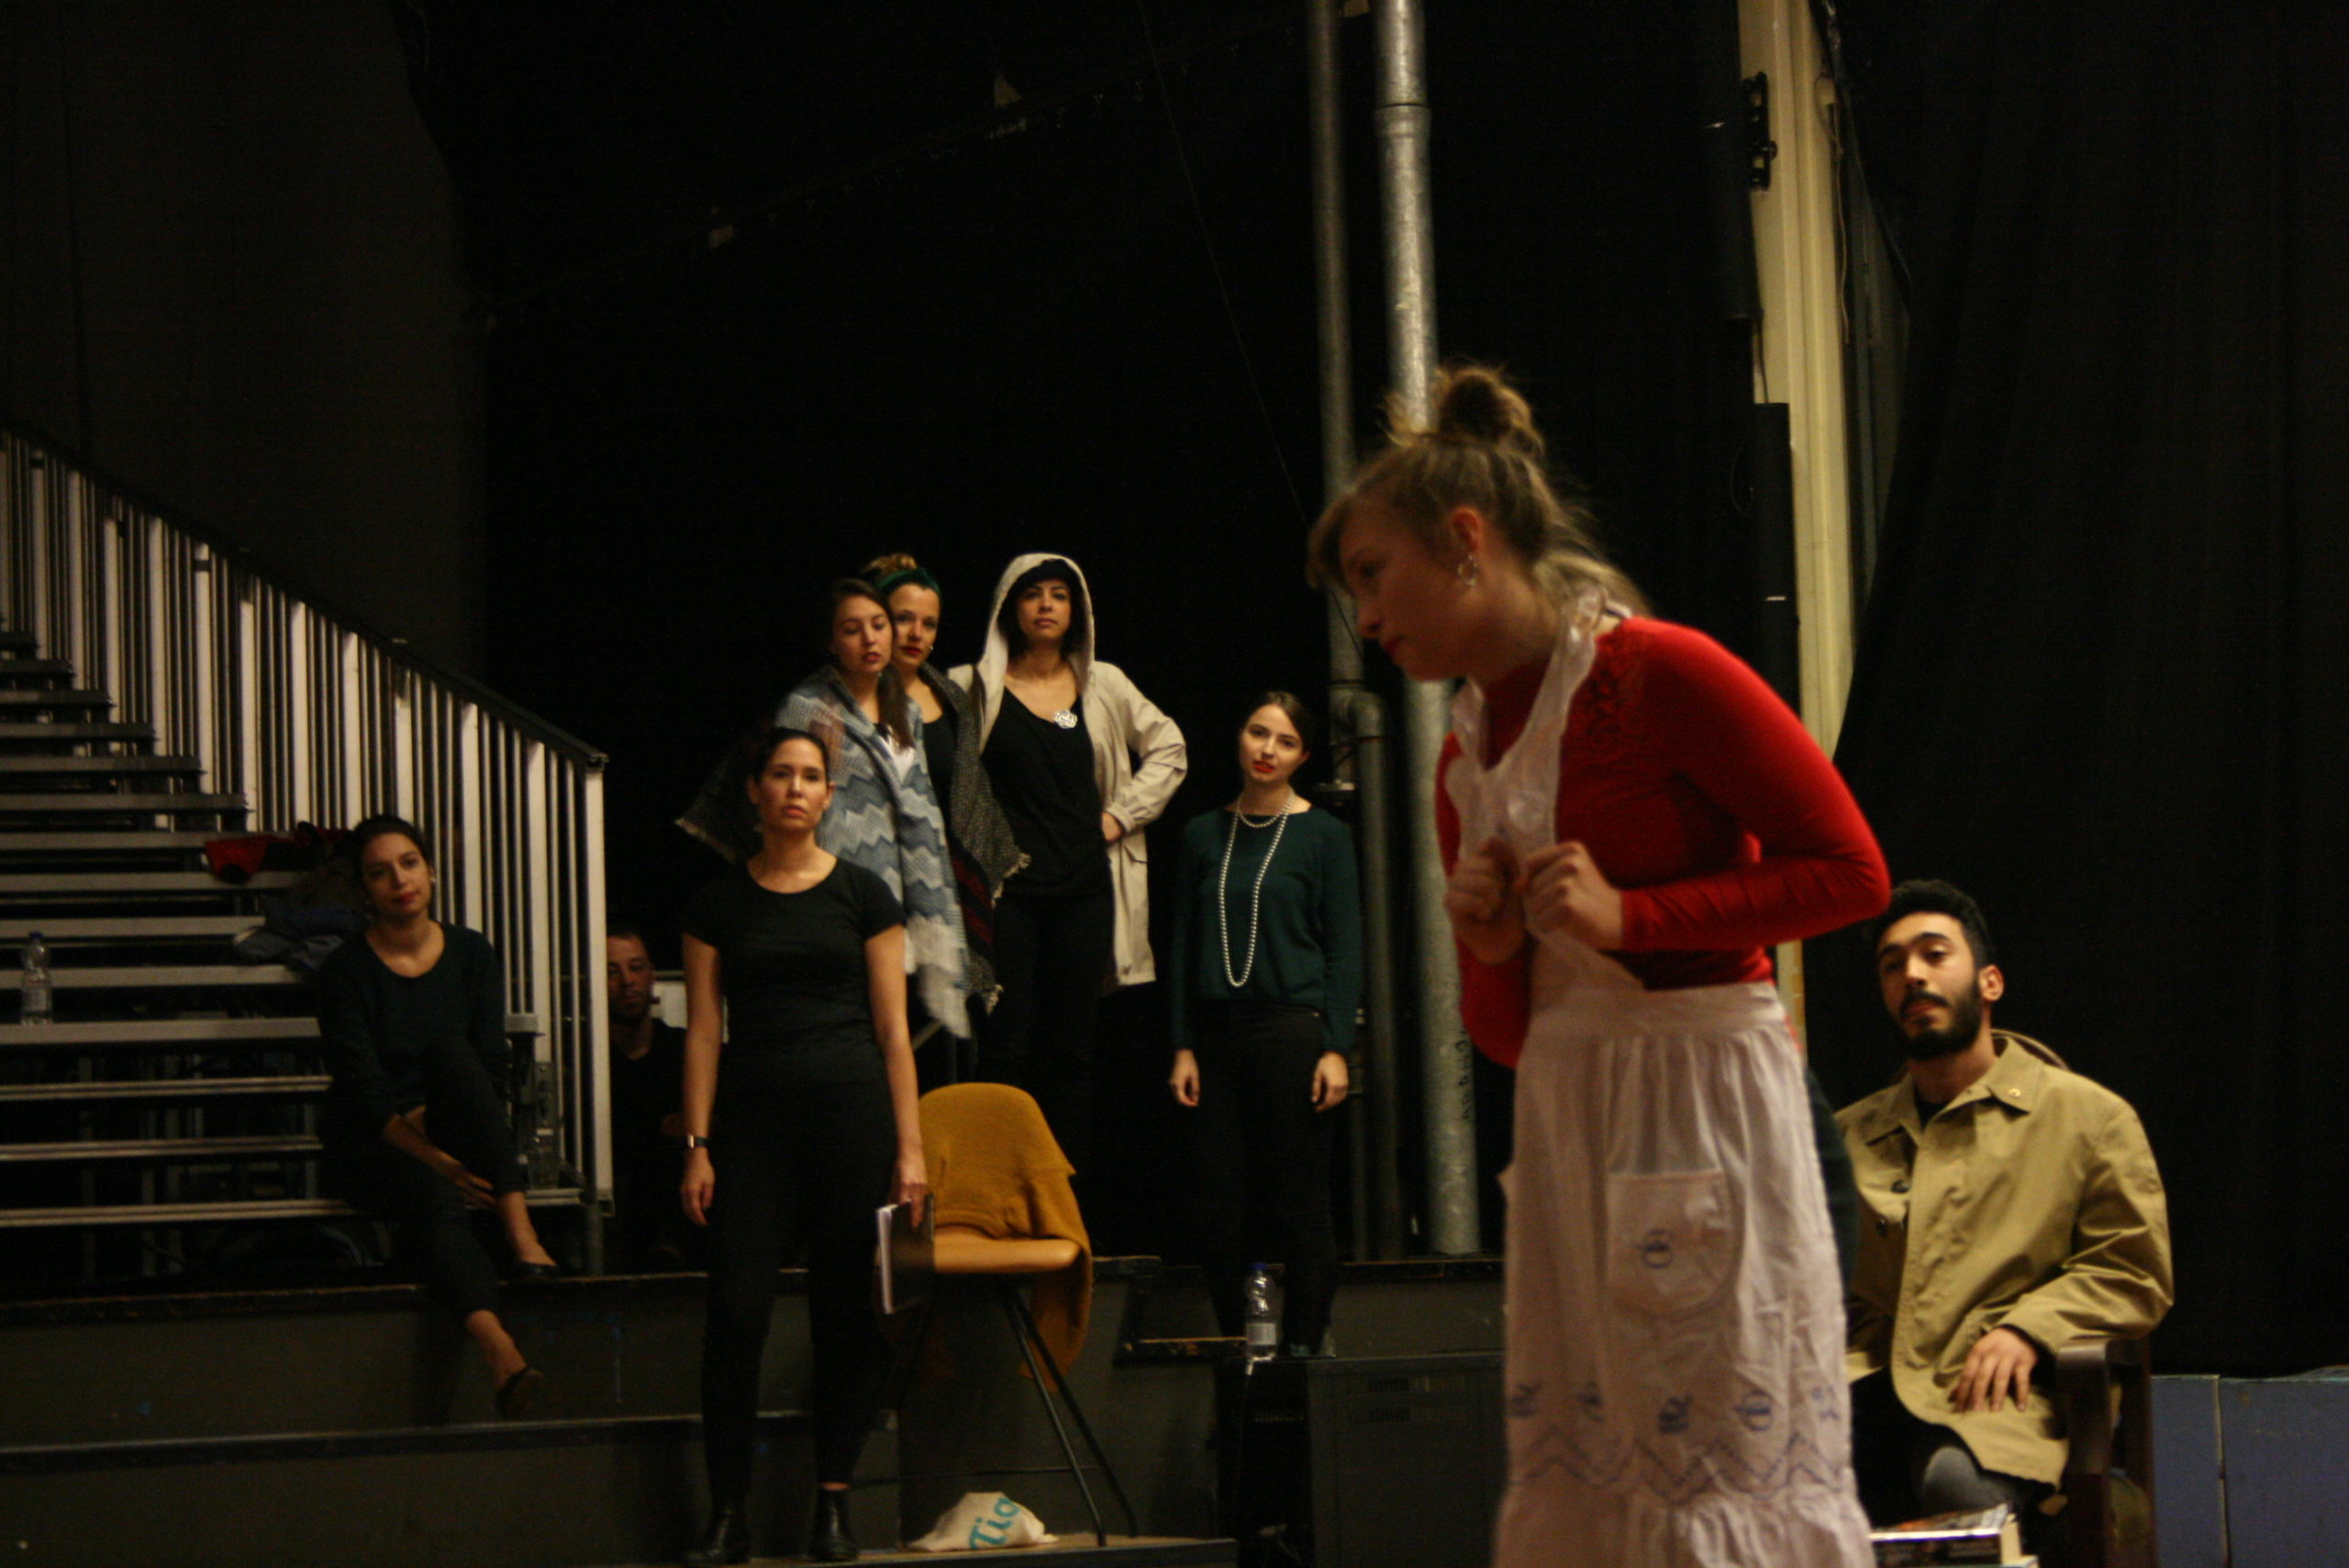 """Photo from the show """"Skin of our Teeth"""". A female actor dressed like a maid on stage, her hands clenched in fists and on her chest. Behind her is the rest of the cast, looking at her"""